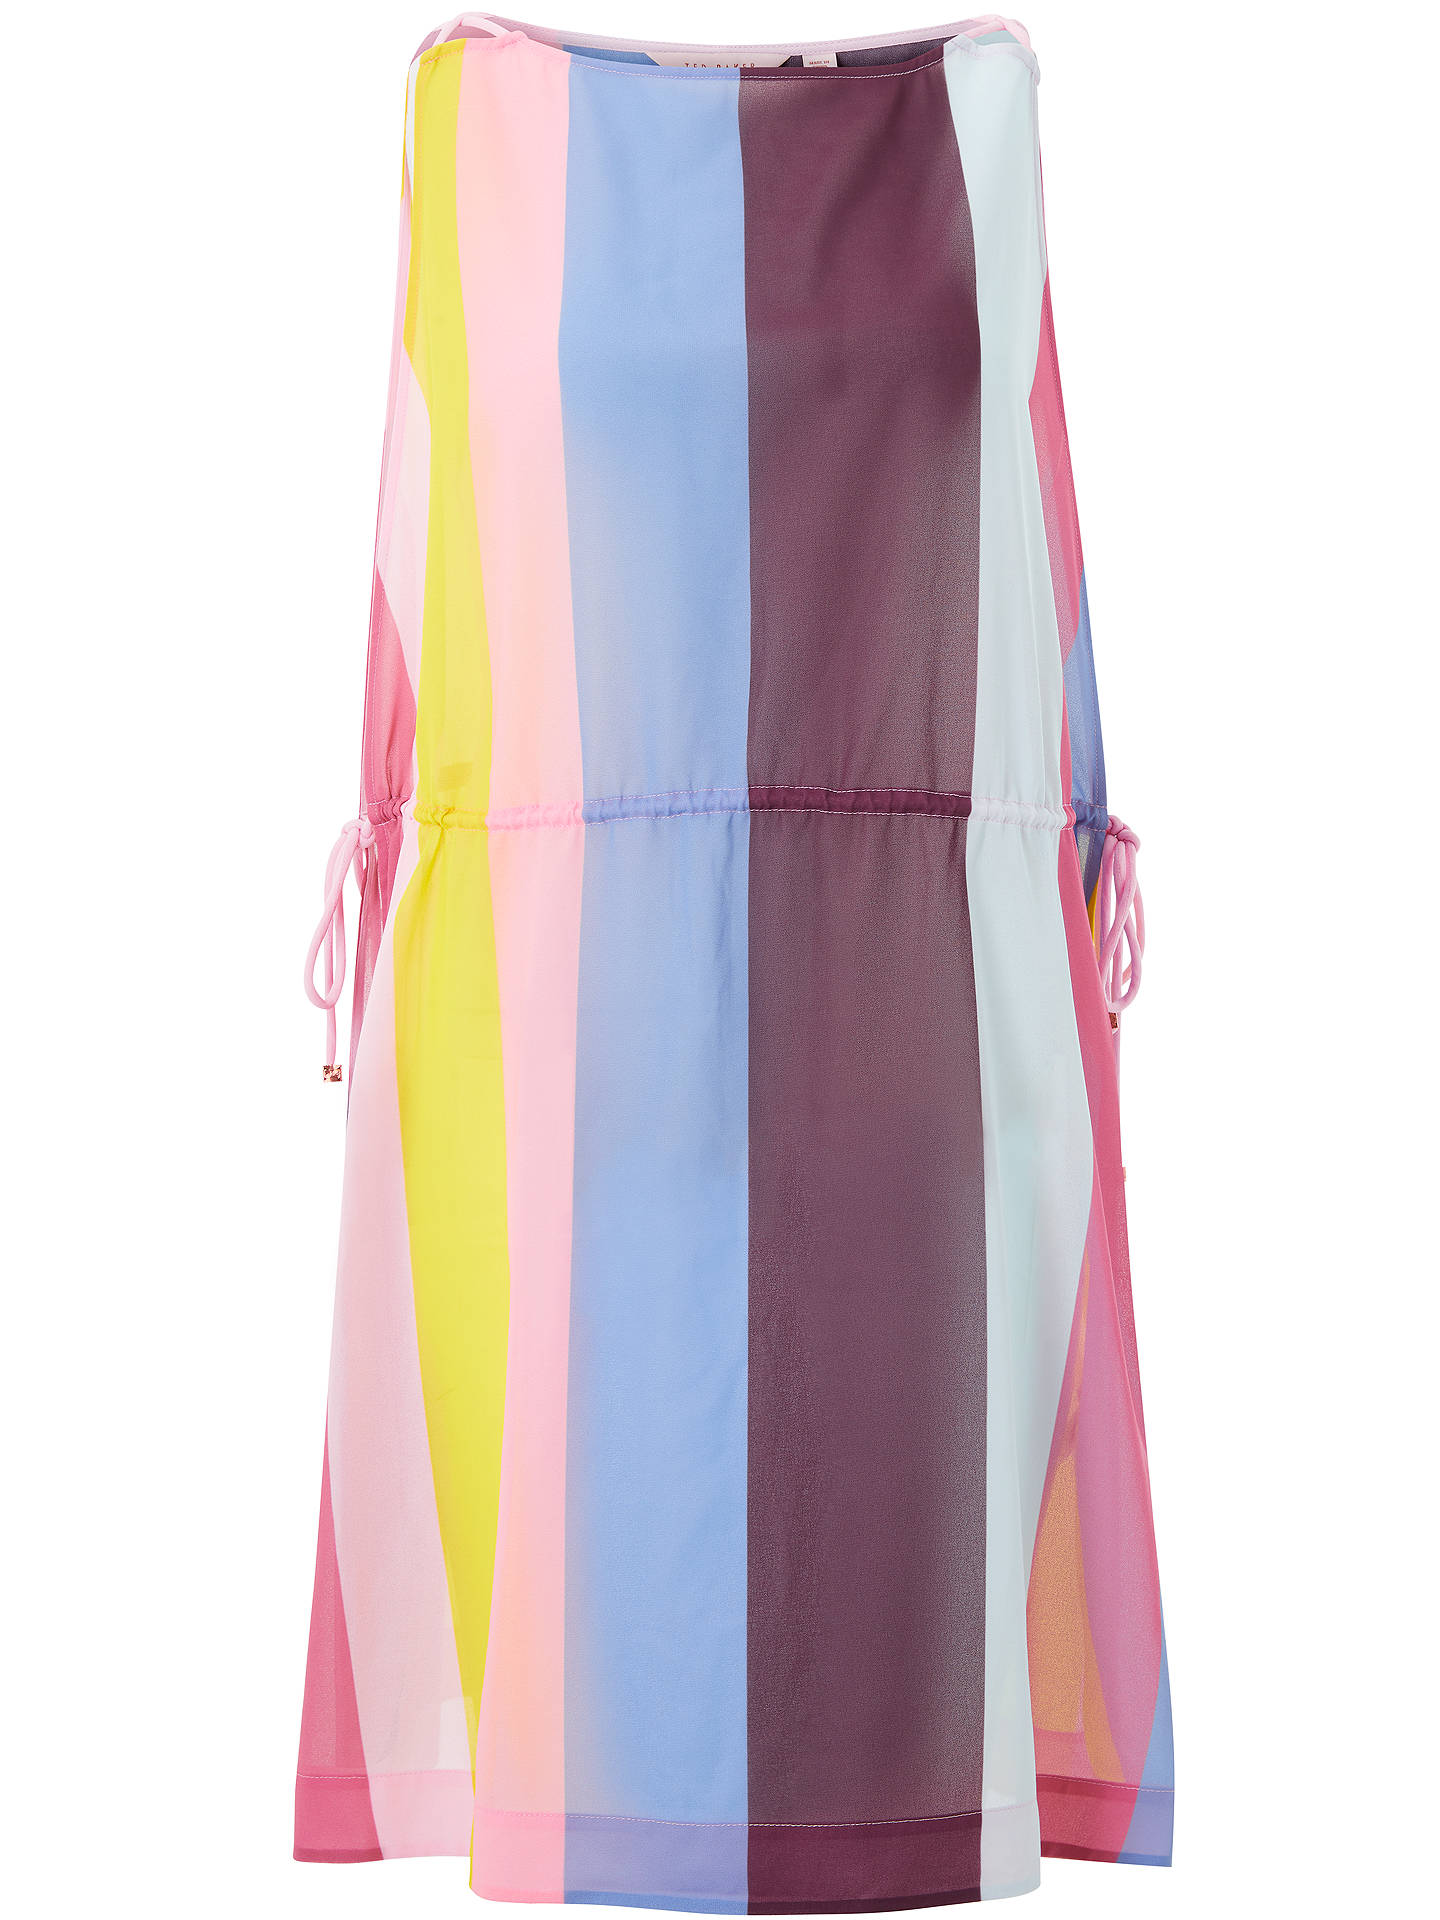 BuyTed Baker Penaree Rio Print Cover Up, Pink/Multi, S Online at johnlewis.com